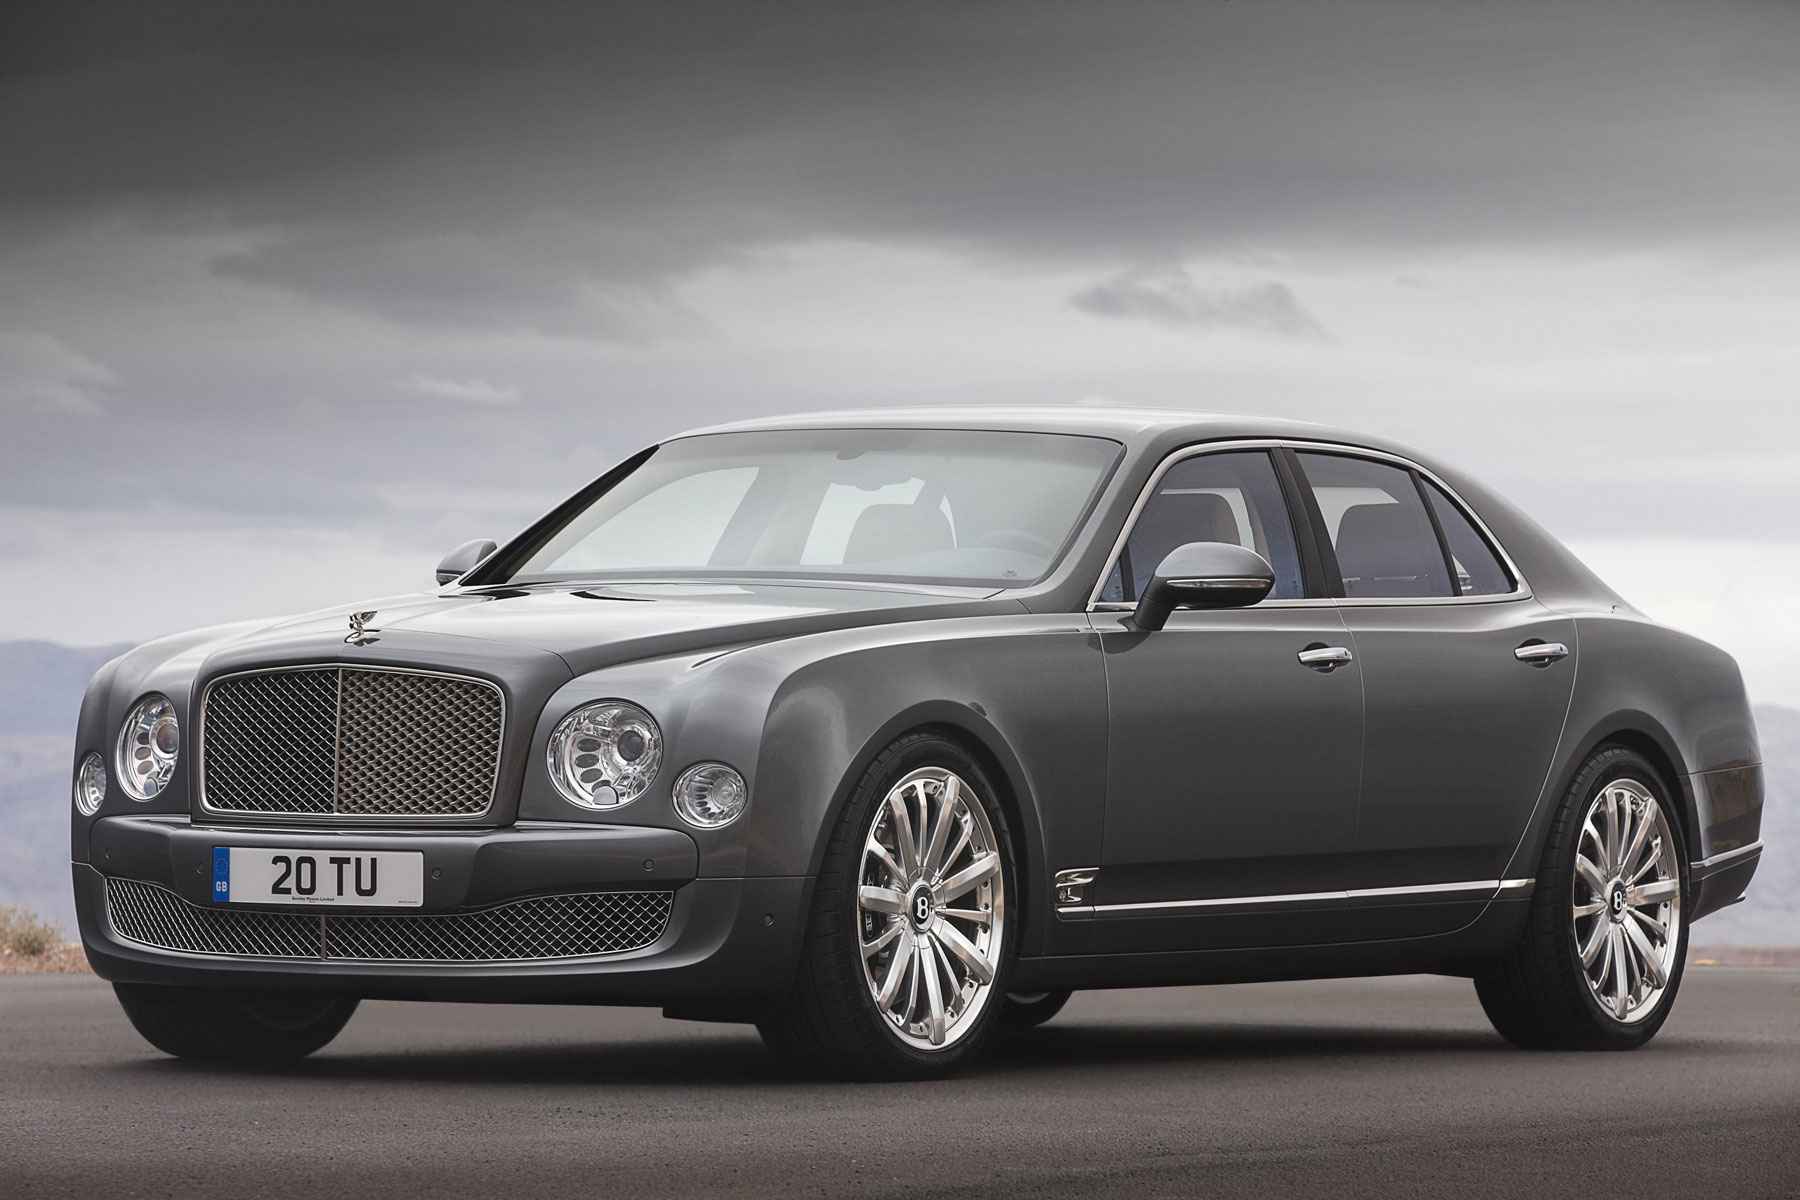 Bentley Showcases New Mulsane Mulliner Driving Specification in